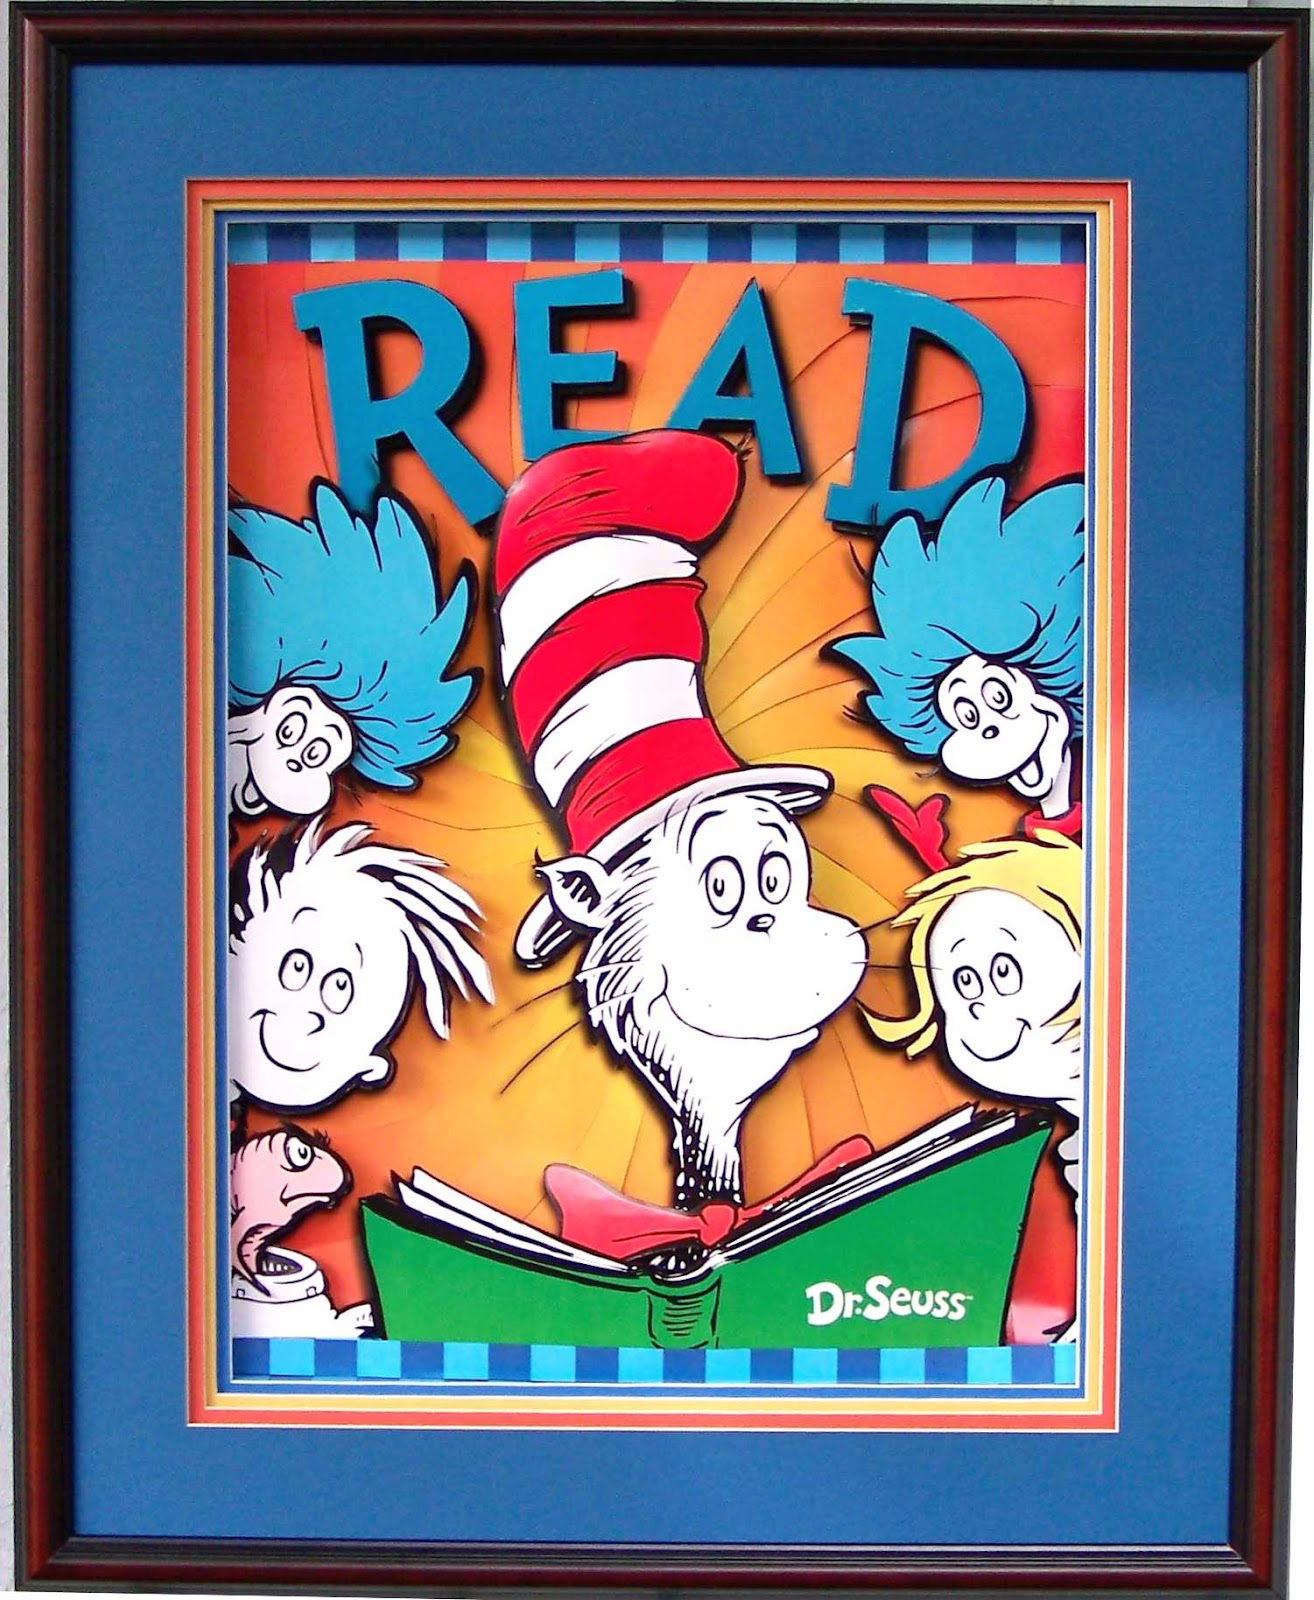 Dr. Seuss-Happy Birthday Party March 2-Books-Crafts-Lessons-Activities ...